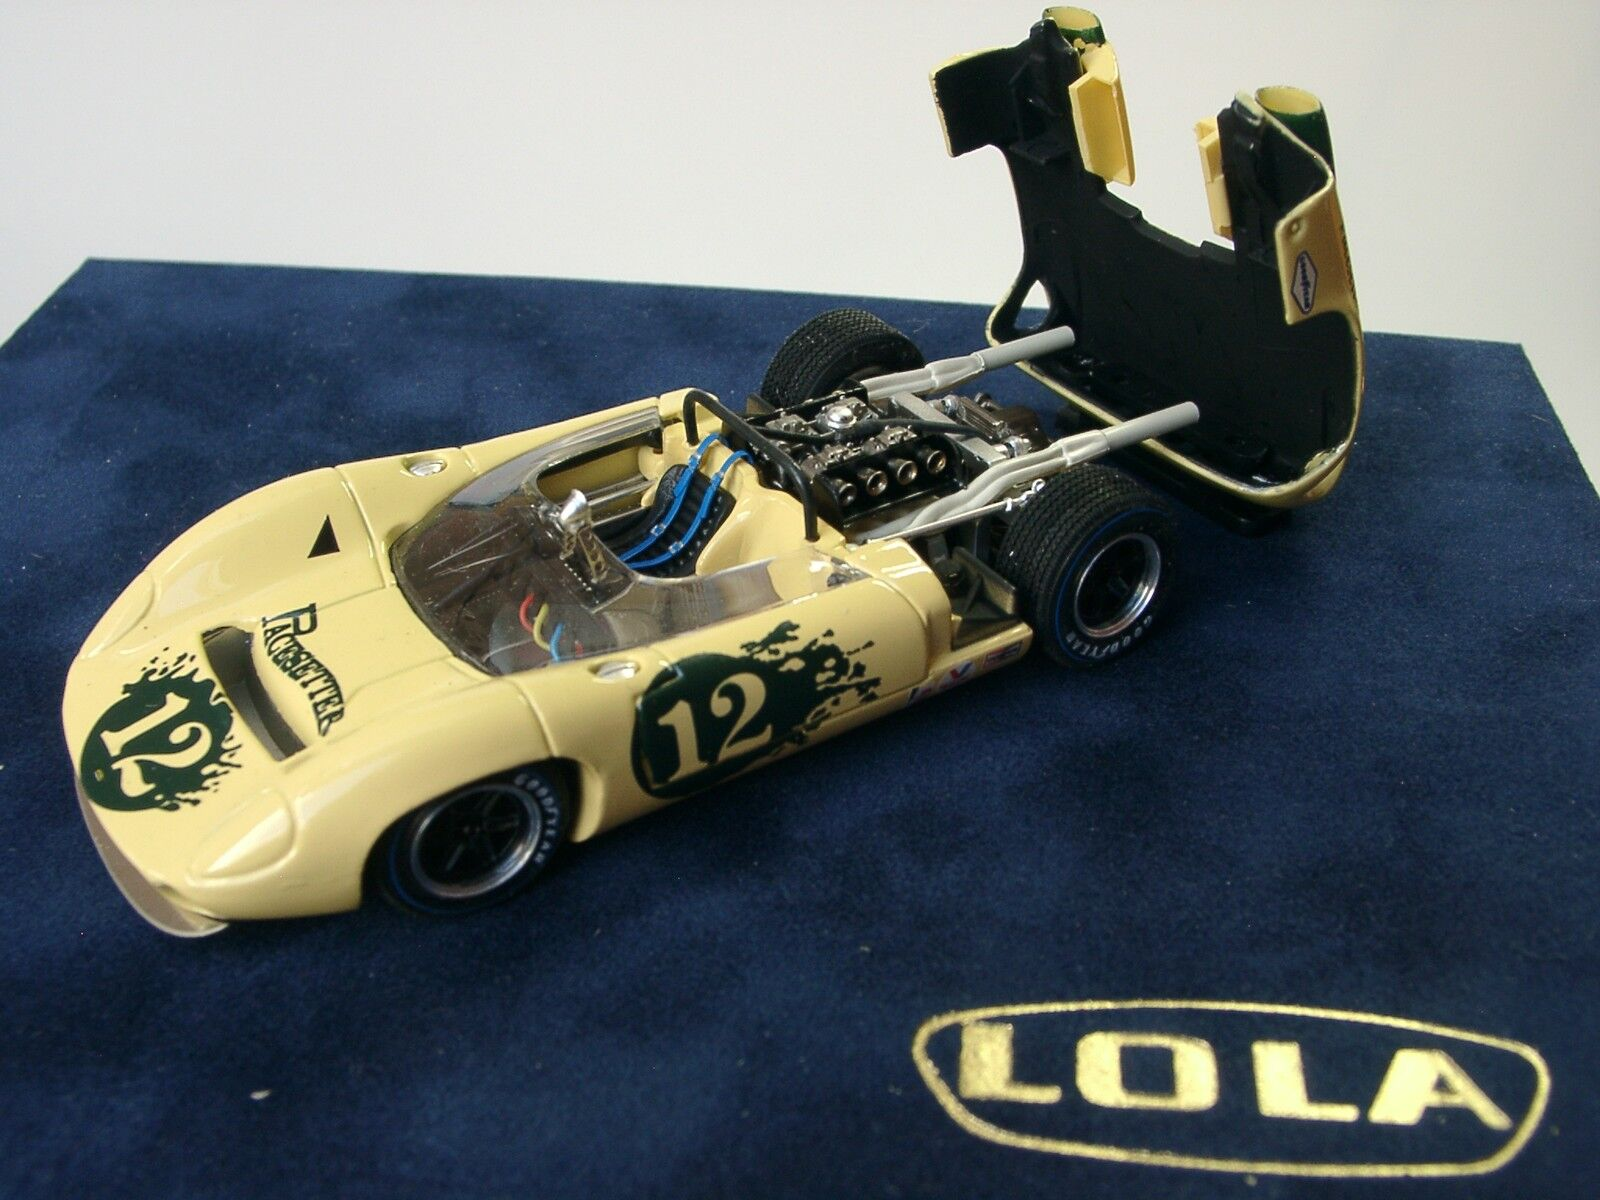 FLY Lola t70 Spyder, #12, McCluskey, 1967-stand modello 1/43 METAL